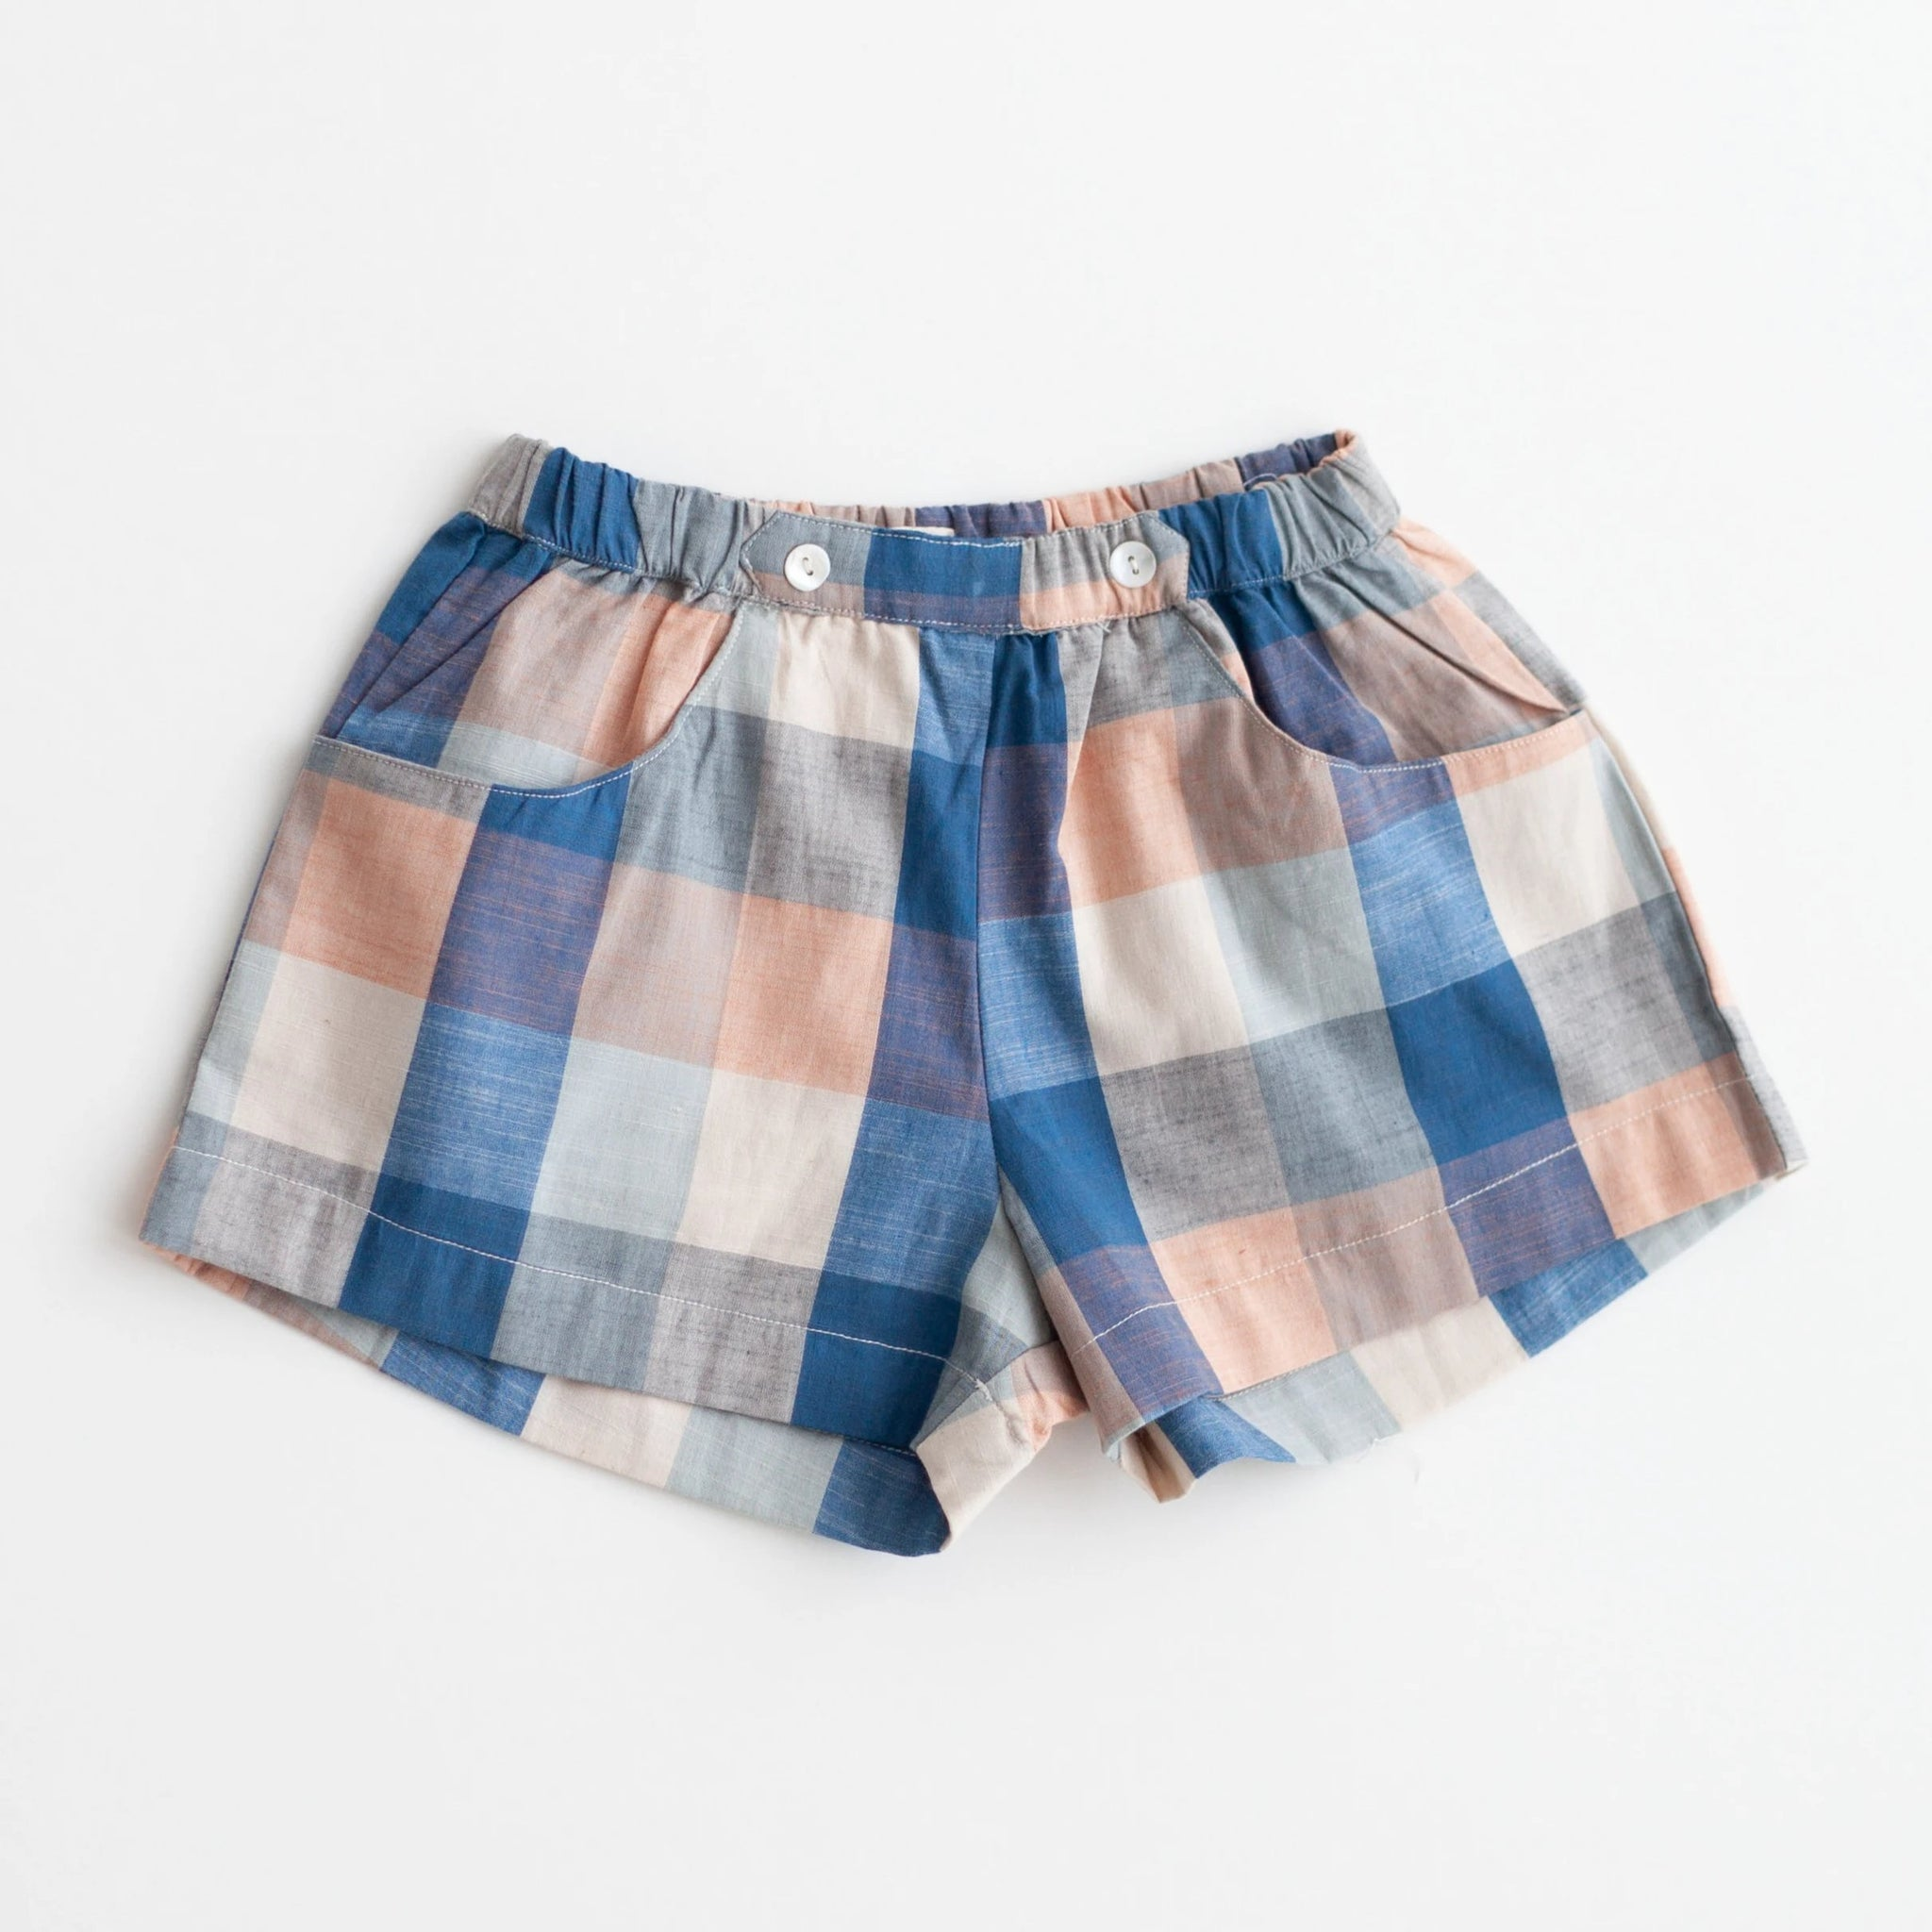 Begonia Shorts - Blue Chex